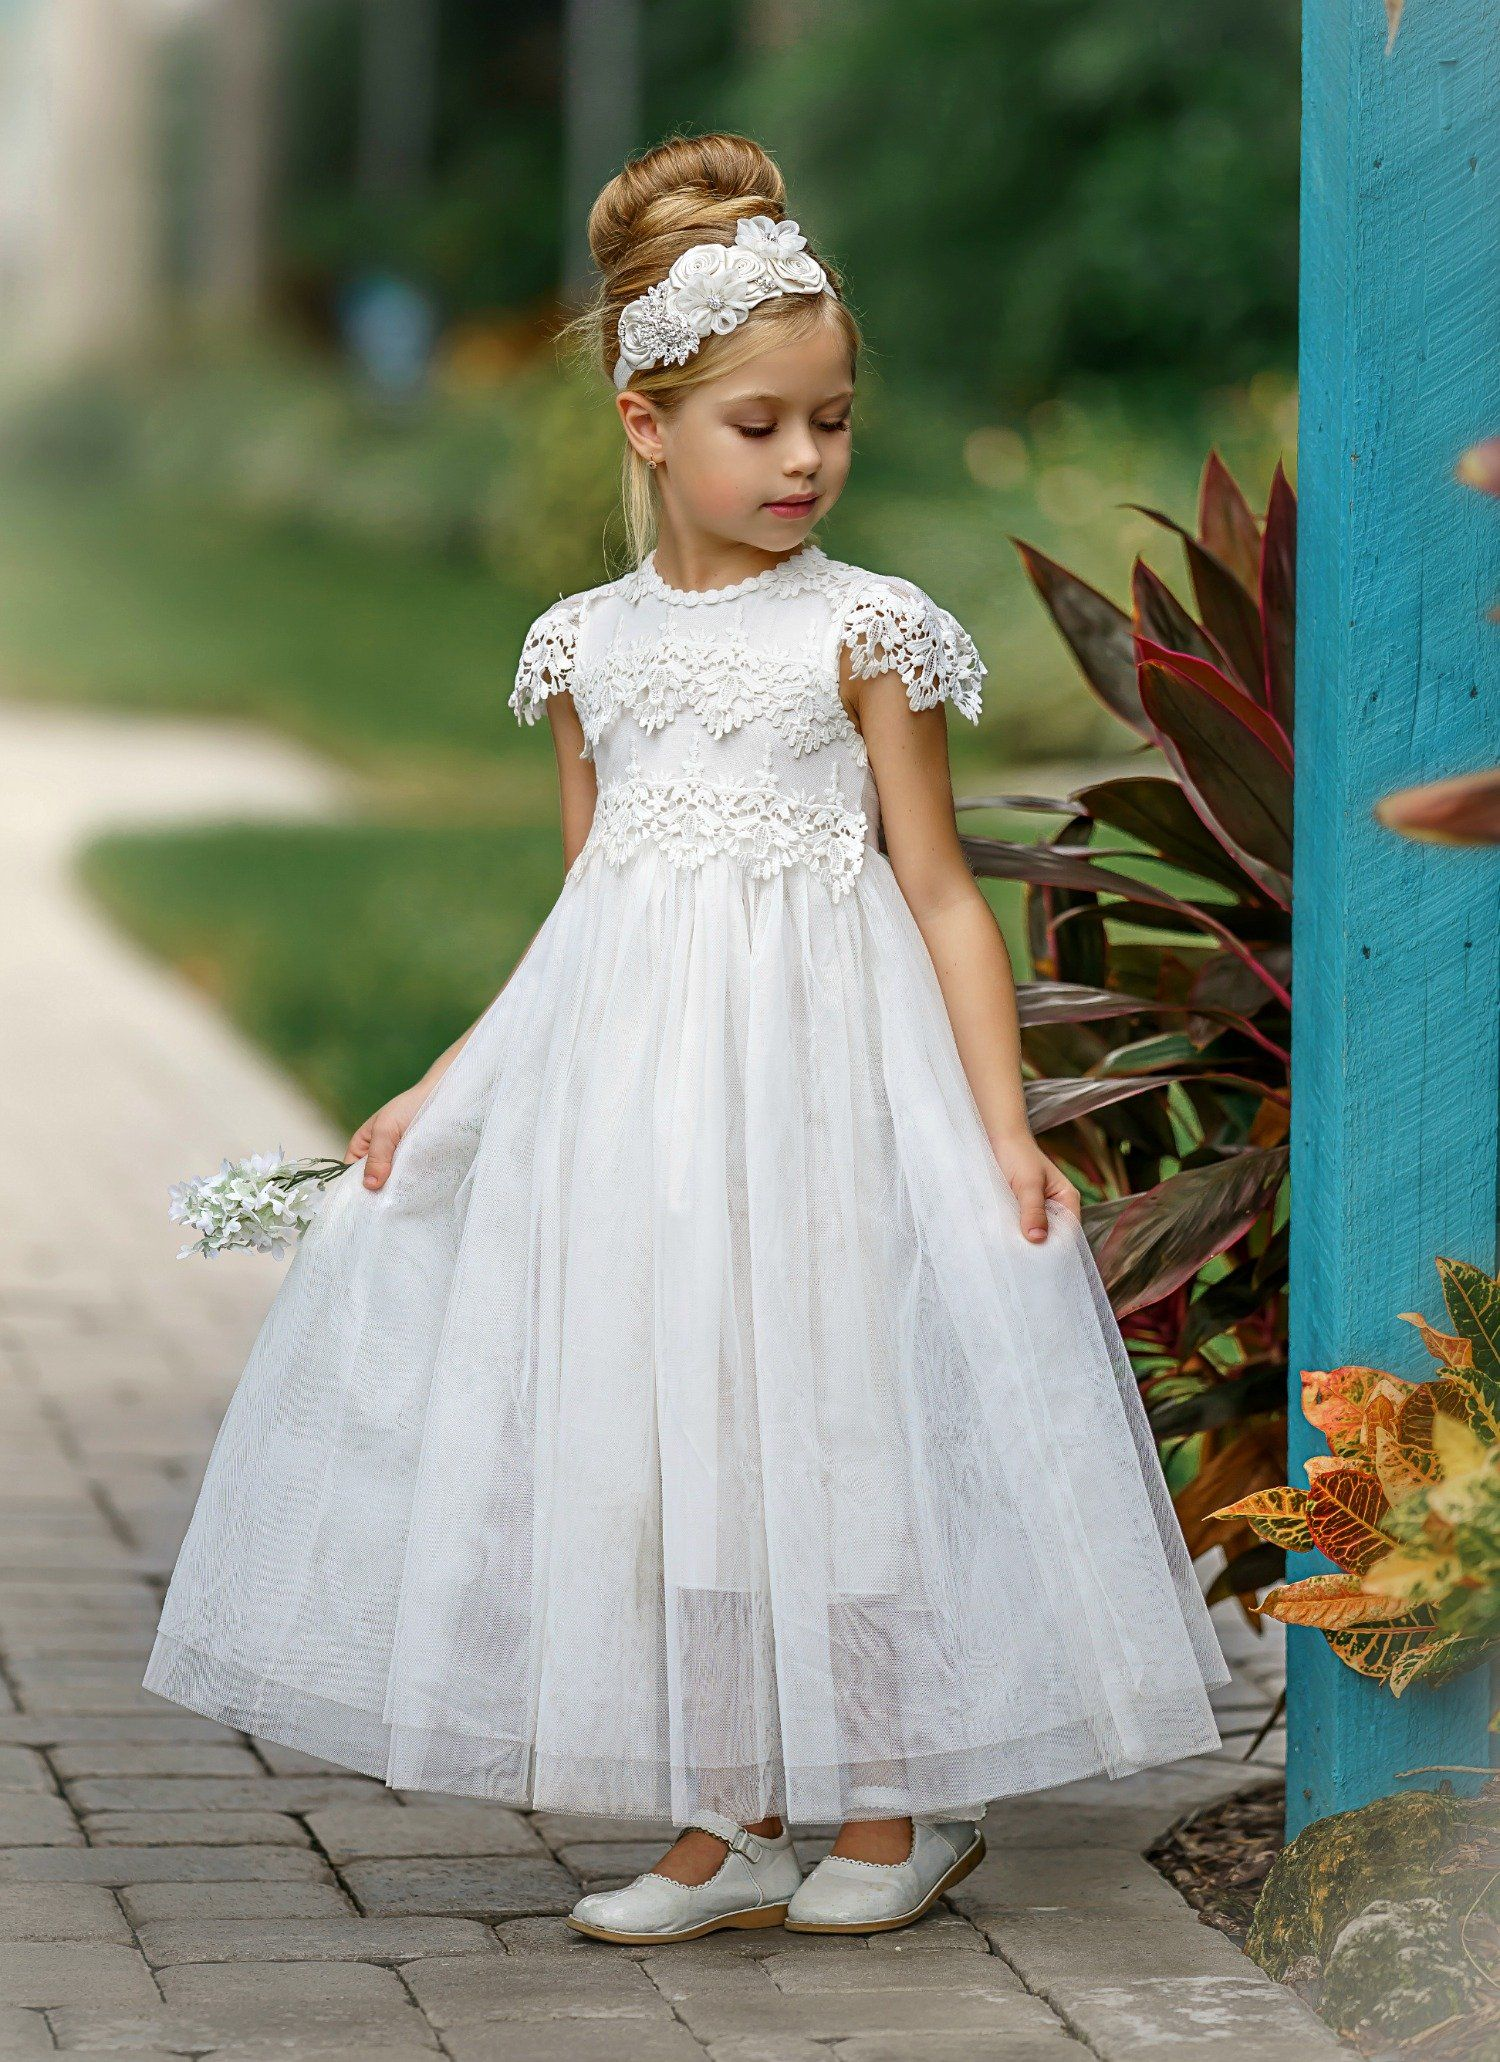 Luciana Long Cap Sleeve Lace Flower Girl Dress Off White Think Pink Bows Flower Girl Dresses Flower Girl Dress Lace White Flower Girl Dresses [ 2062 x 1500 Pixel ]